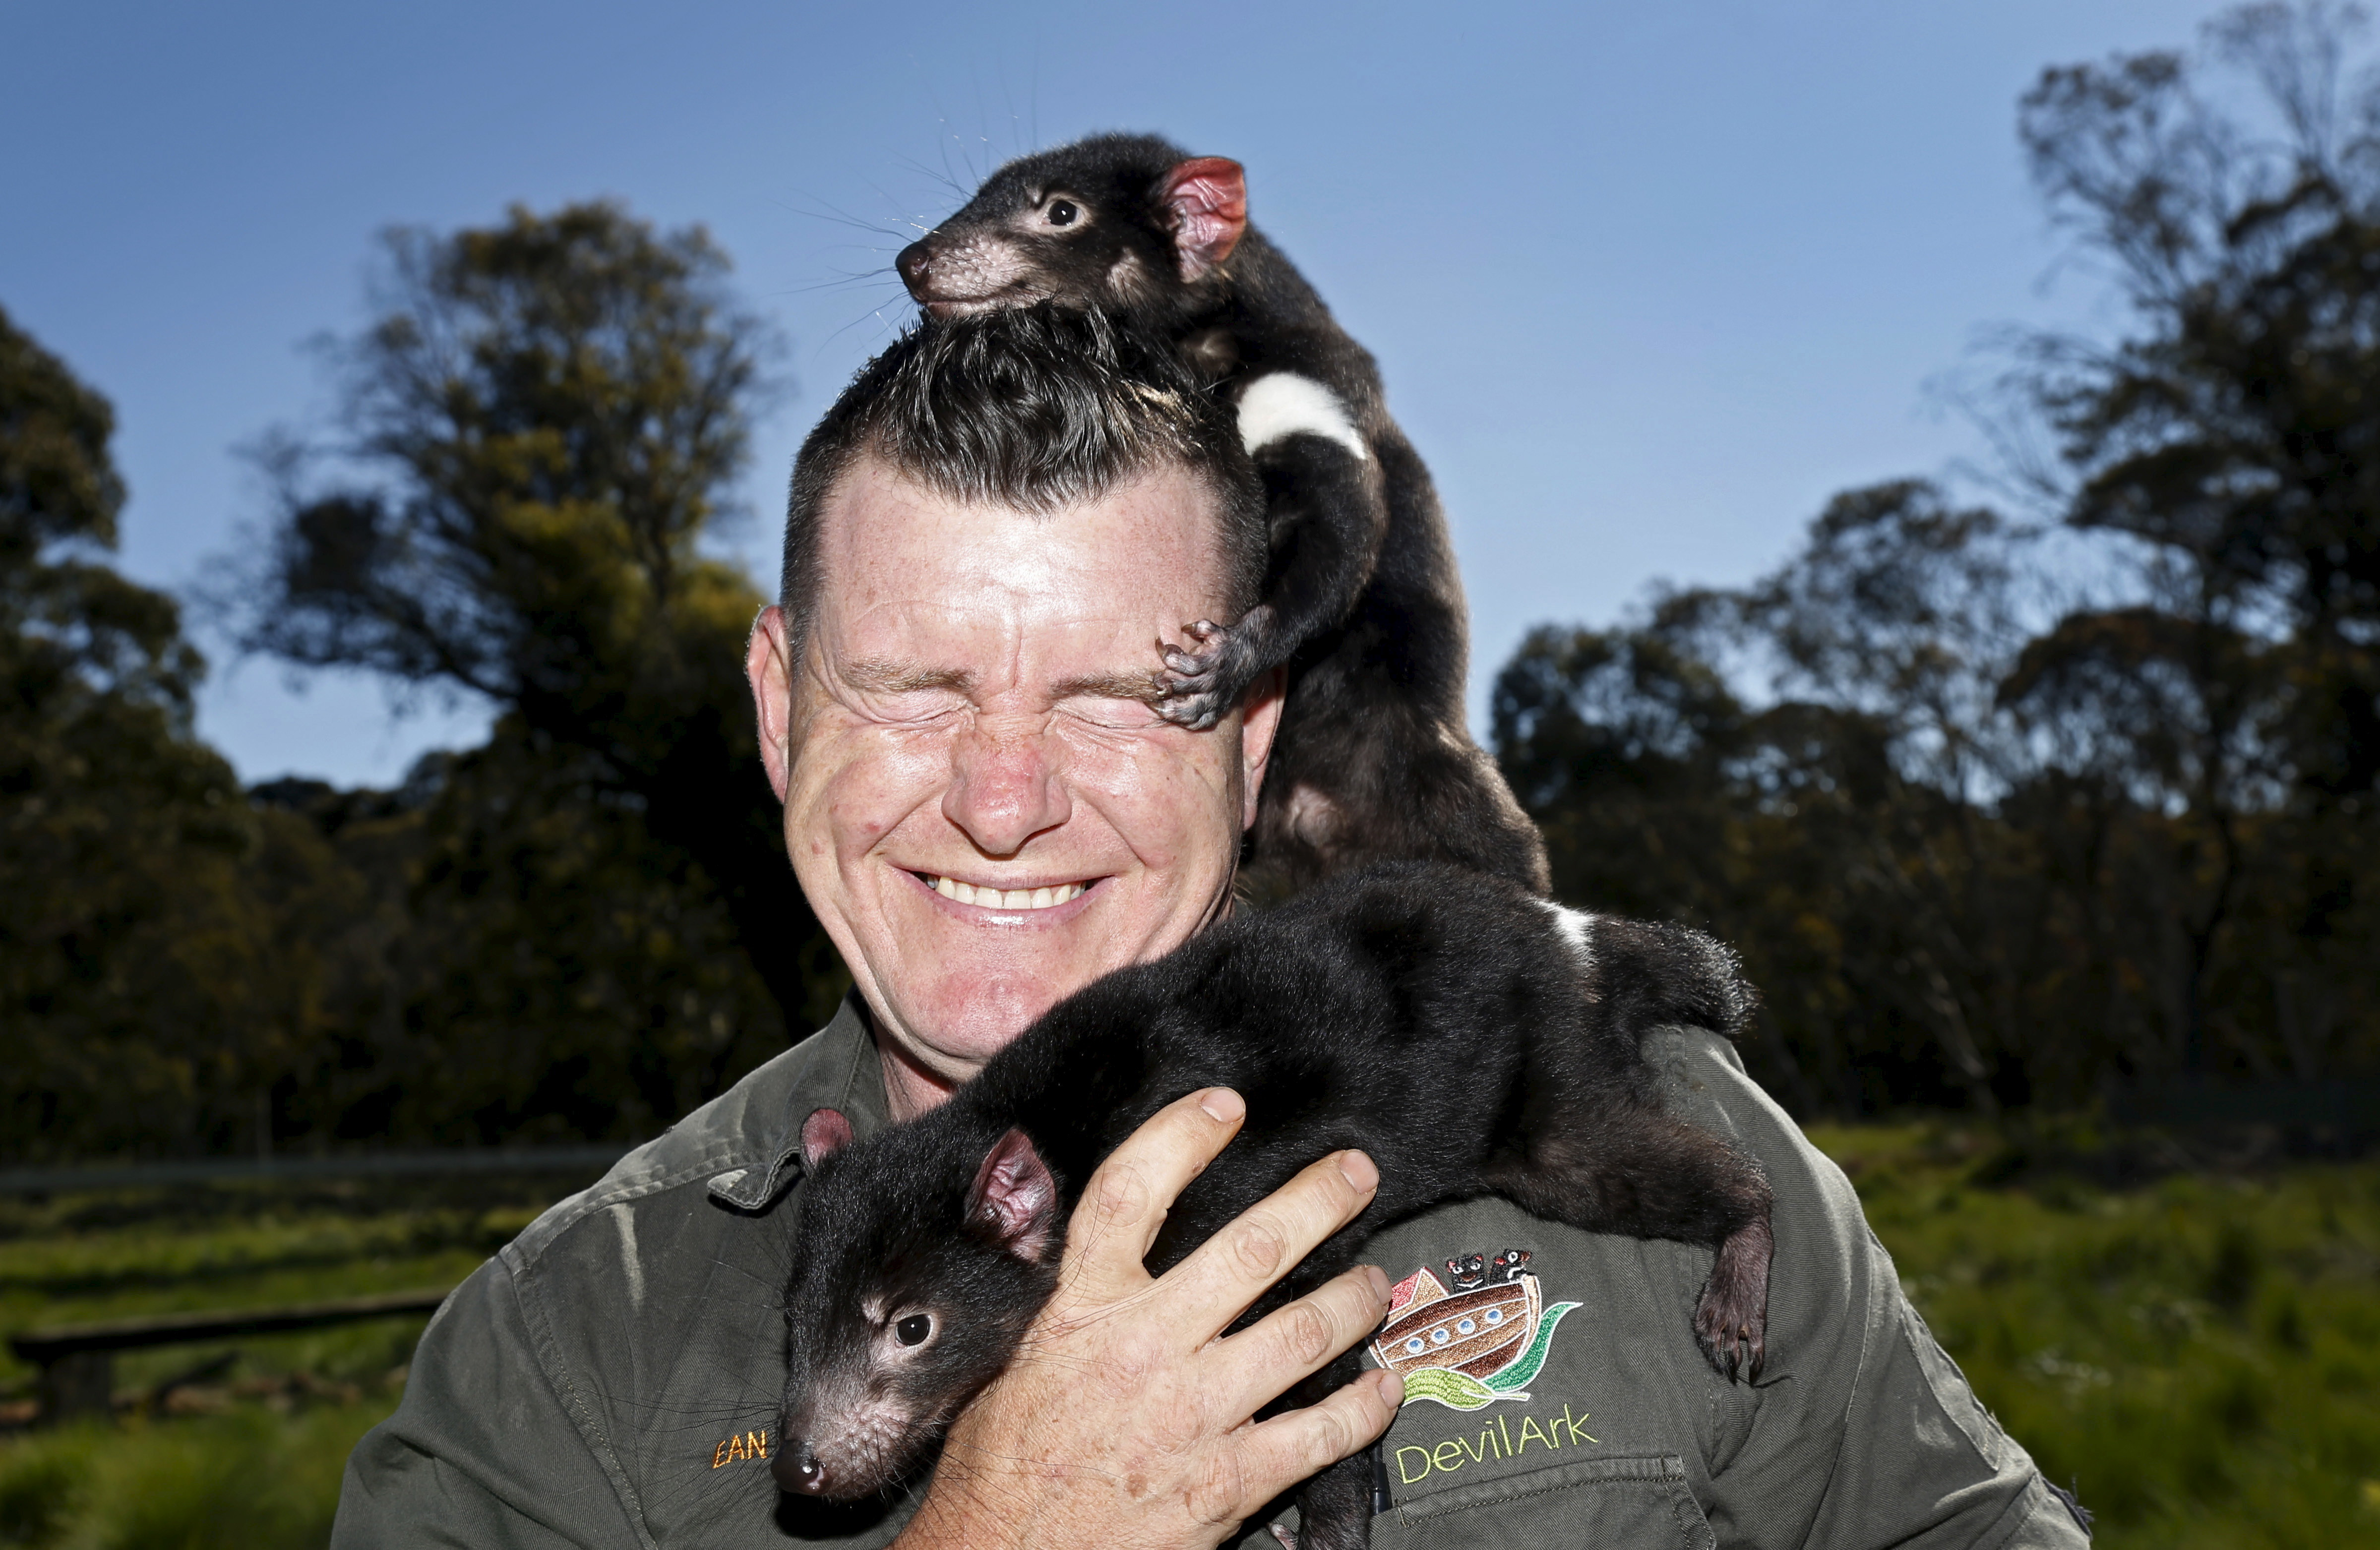 Devil Ark manager Dean Reid reacts as Tasmanian Devil joeys climb on him before the first shipment of healthy and genetically diverse devils to the island state of Tasmania leave the Devil Ark sanctuary in Barrington Tops on Australia's mainland, November 17, 2015. The largest group so far of disease-free Tasmanian devils has been released in the wild, as part of plans to save the carnivorous marsupials from a cancer threatening them with extinction. Picture taken November 17.    REUTERS/Jason Reed       TPX IMAGES OF THE DAY      - GF20000065424